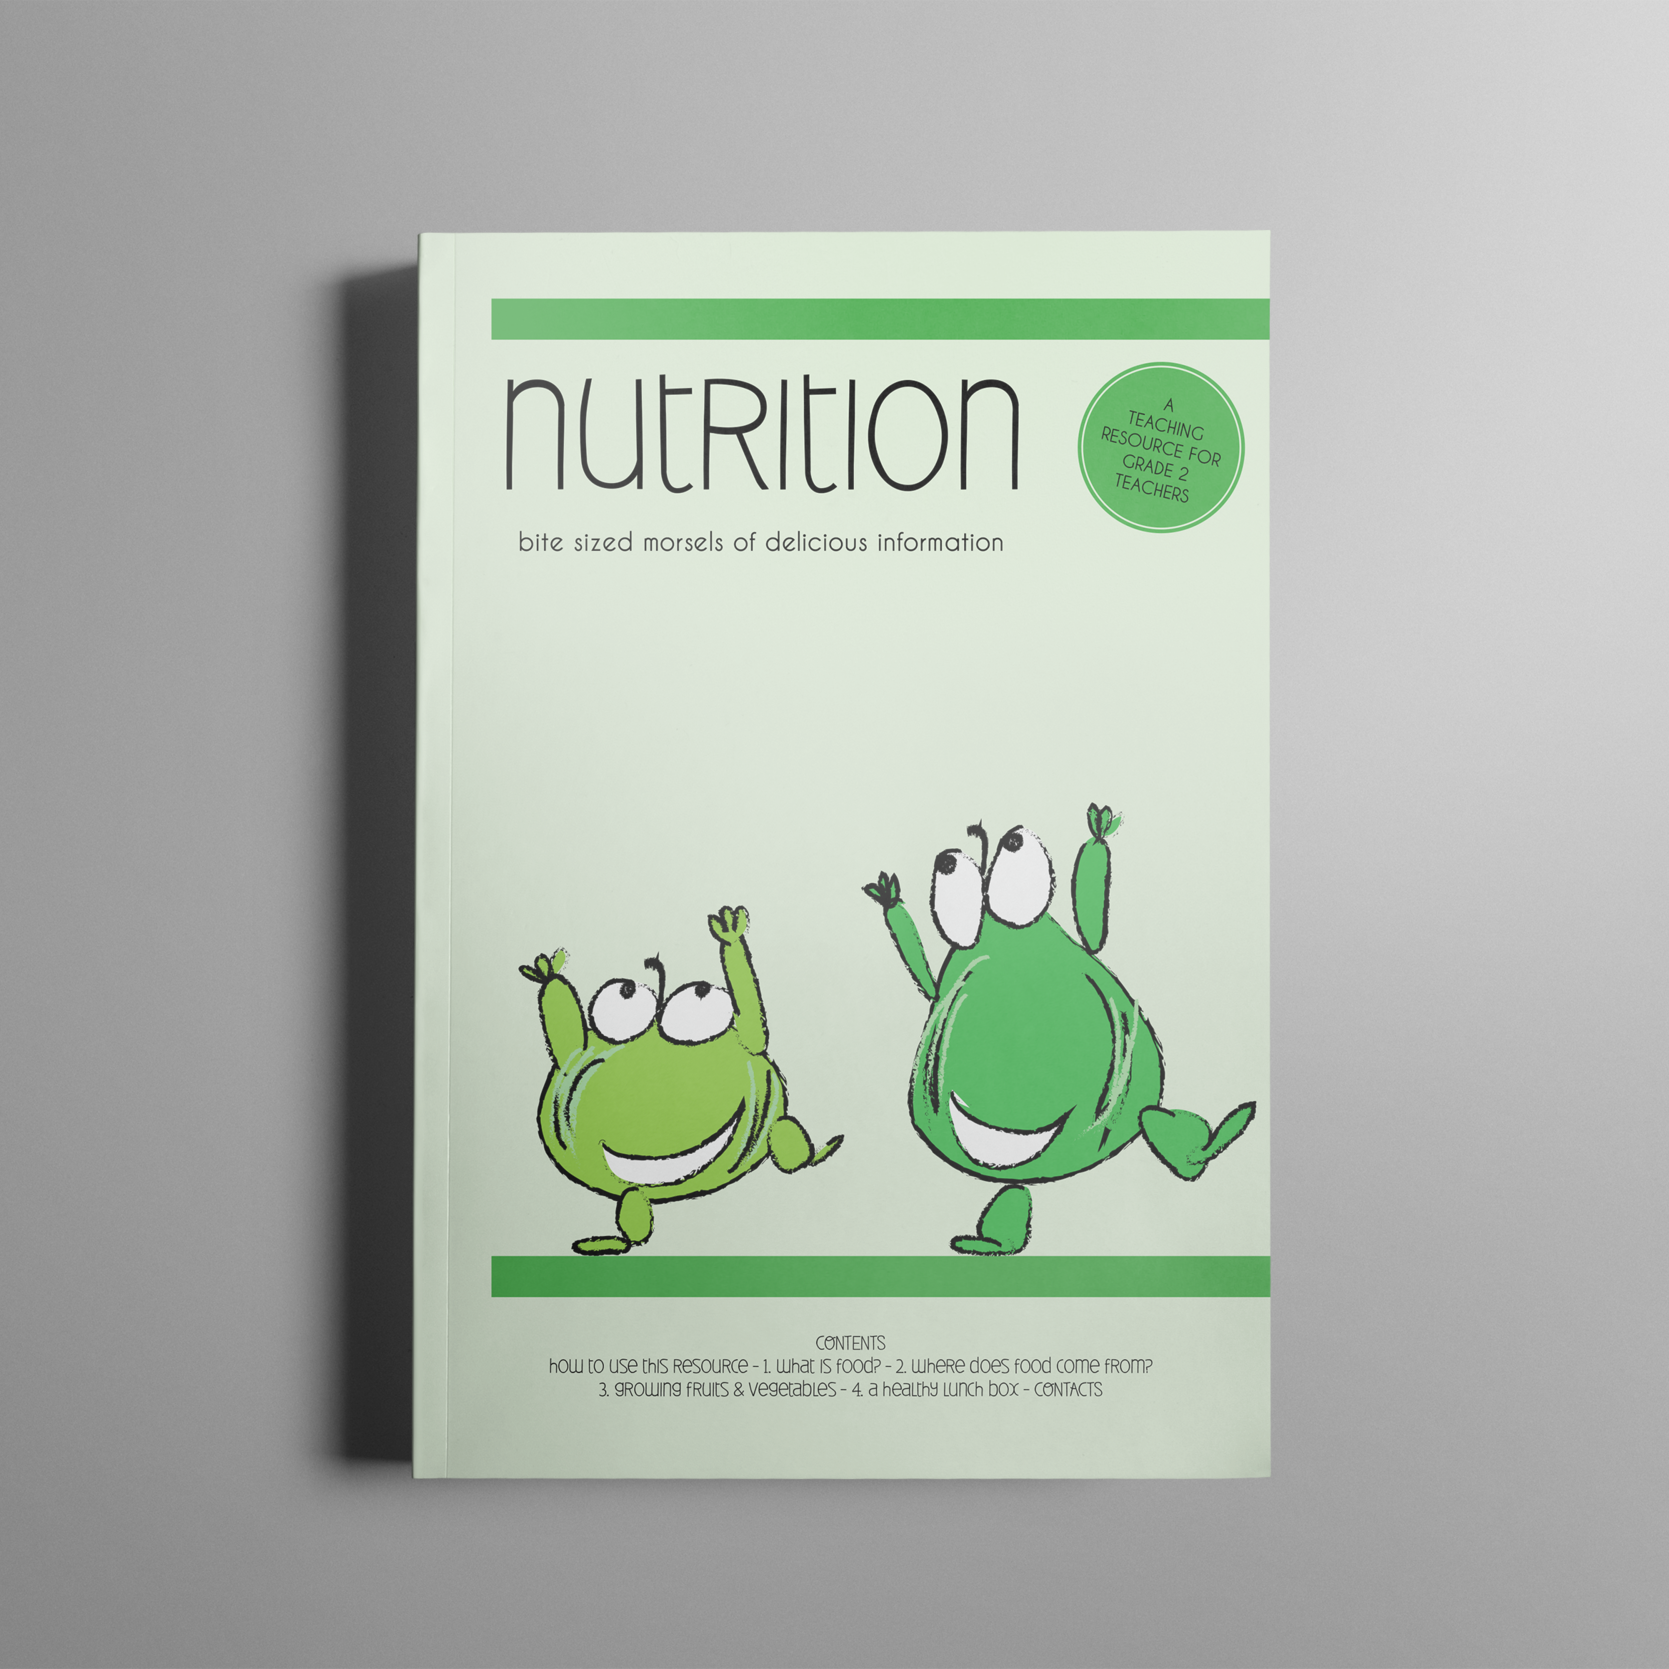 THE CHILD HEALTH PROMOTION RESEARCH CENTRE  [PUBLICATION DESIGN / ILLUSTRATION}